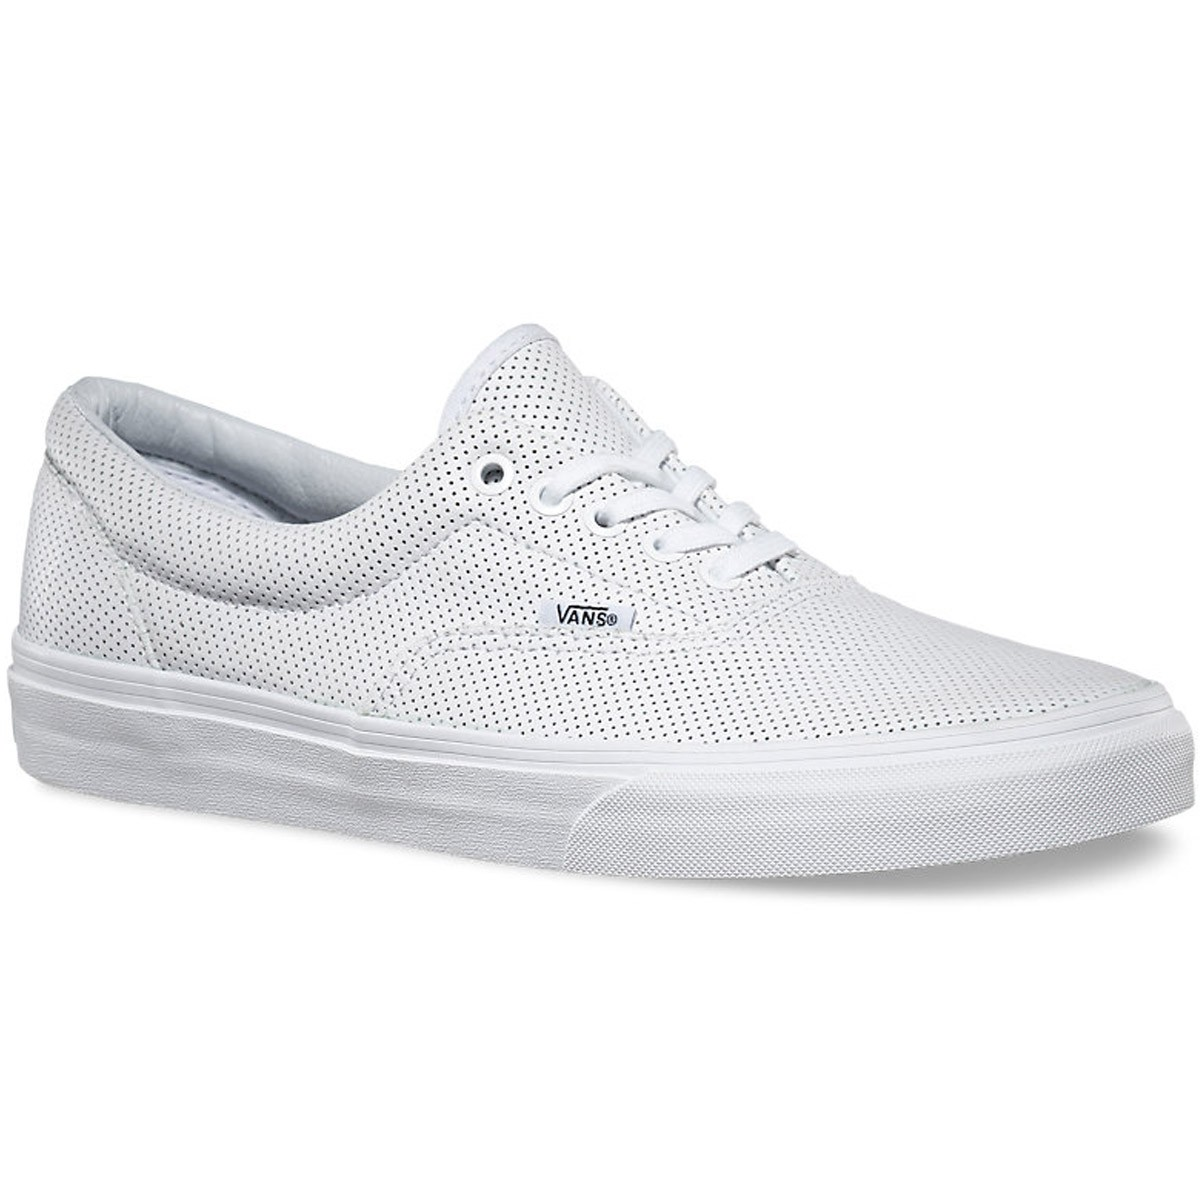 2ab19ac5f283 Vans Era Perforated Leather Shoes - True White - 6.0